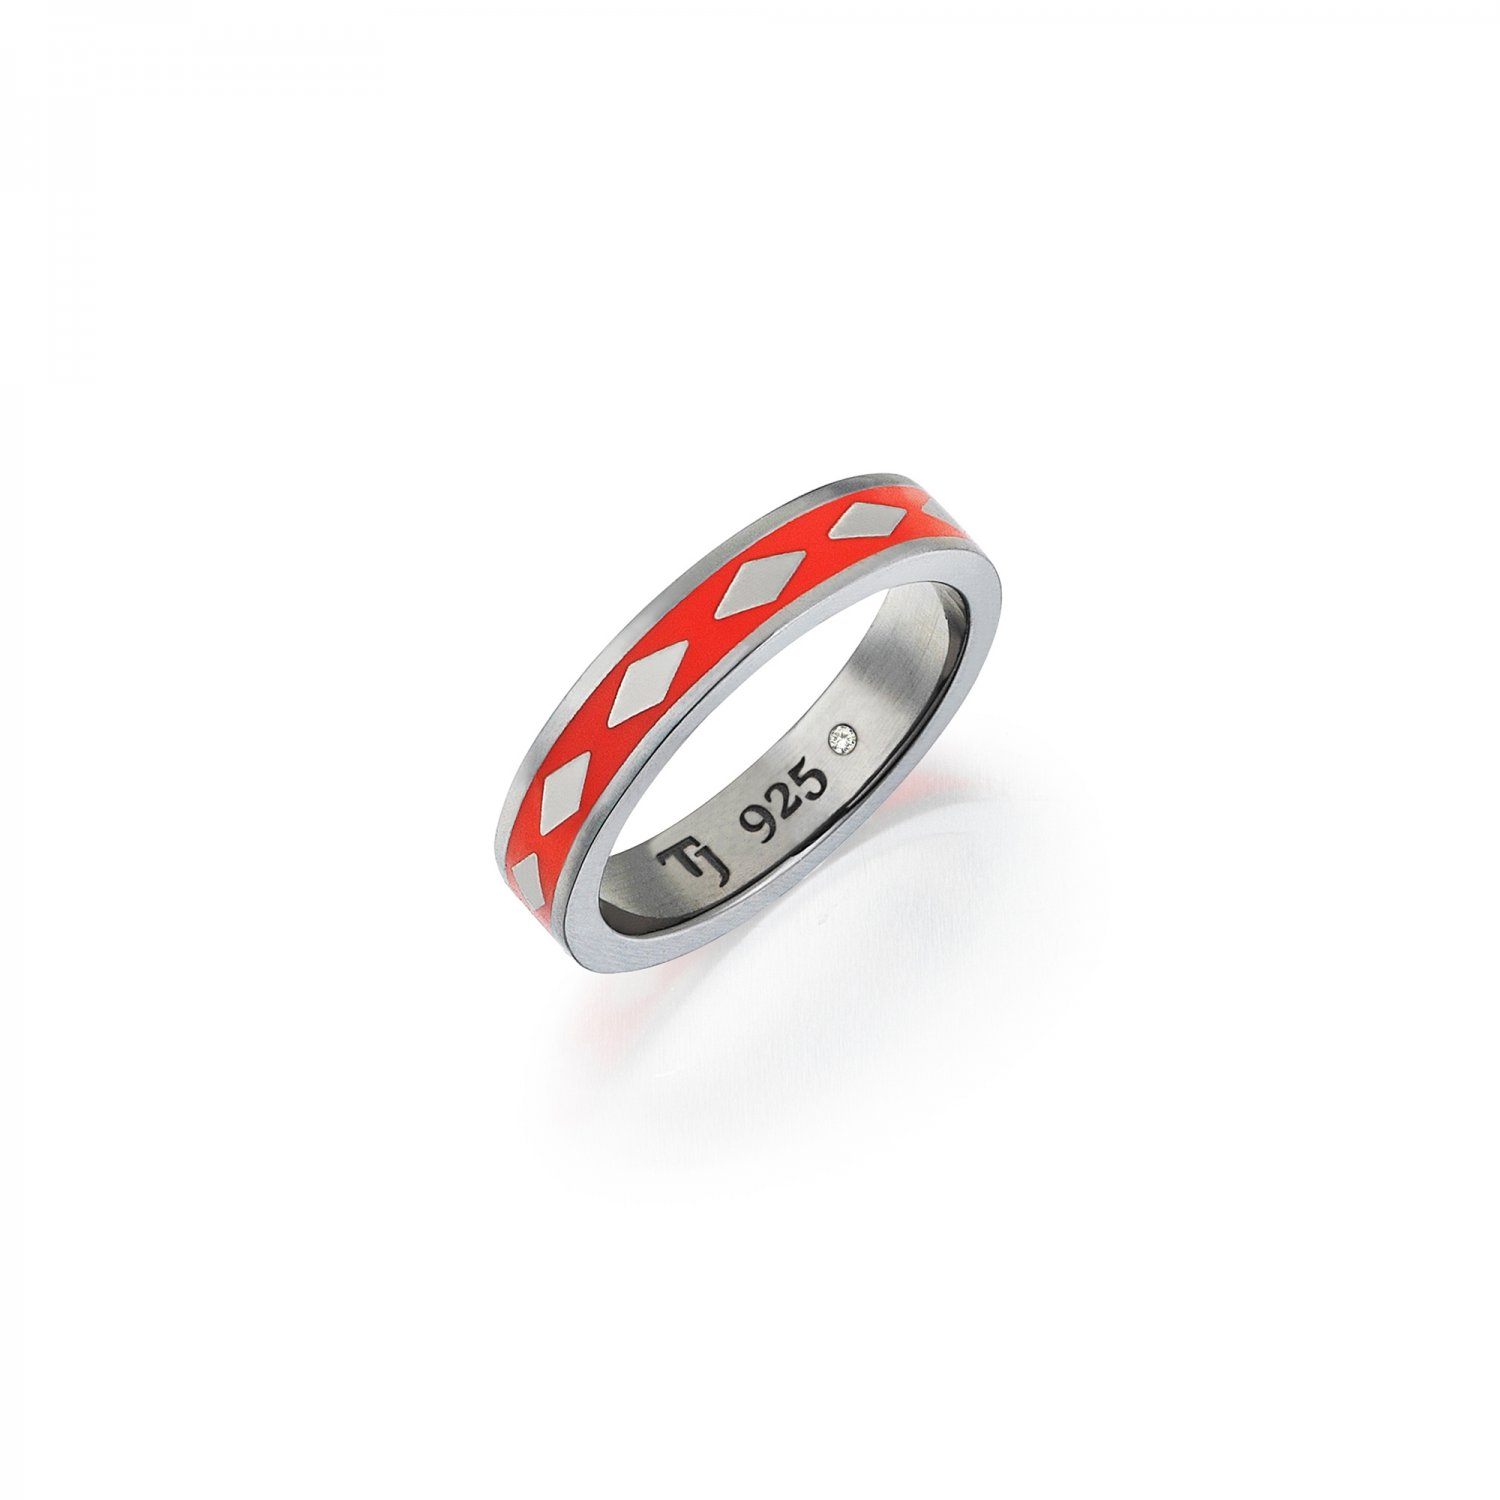 Cubic Snake Band in Silver - 5,30mm - ORANGE